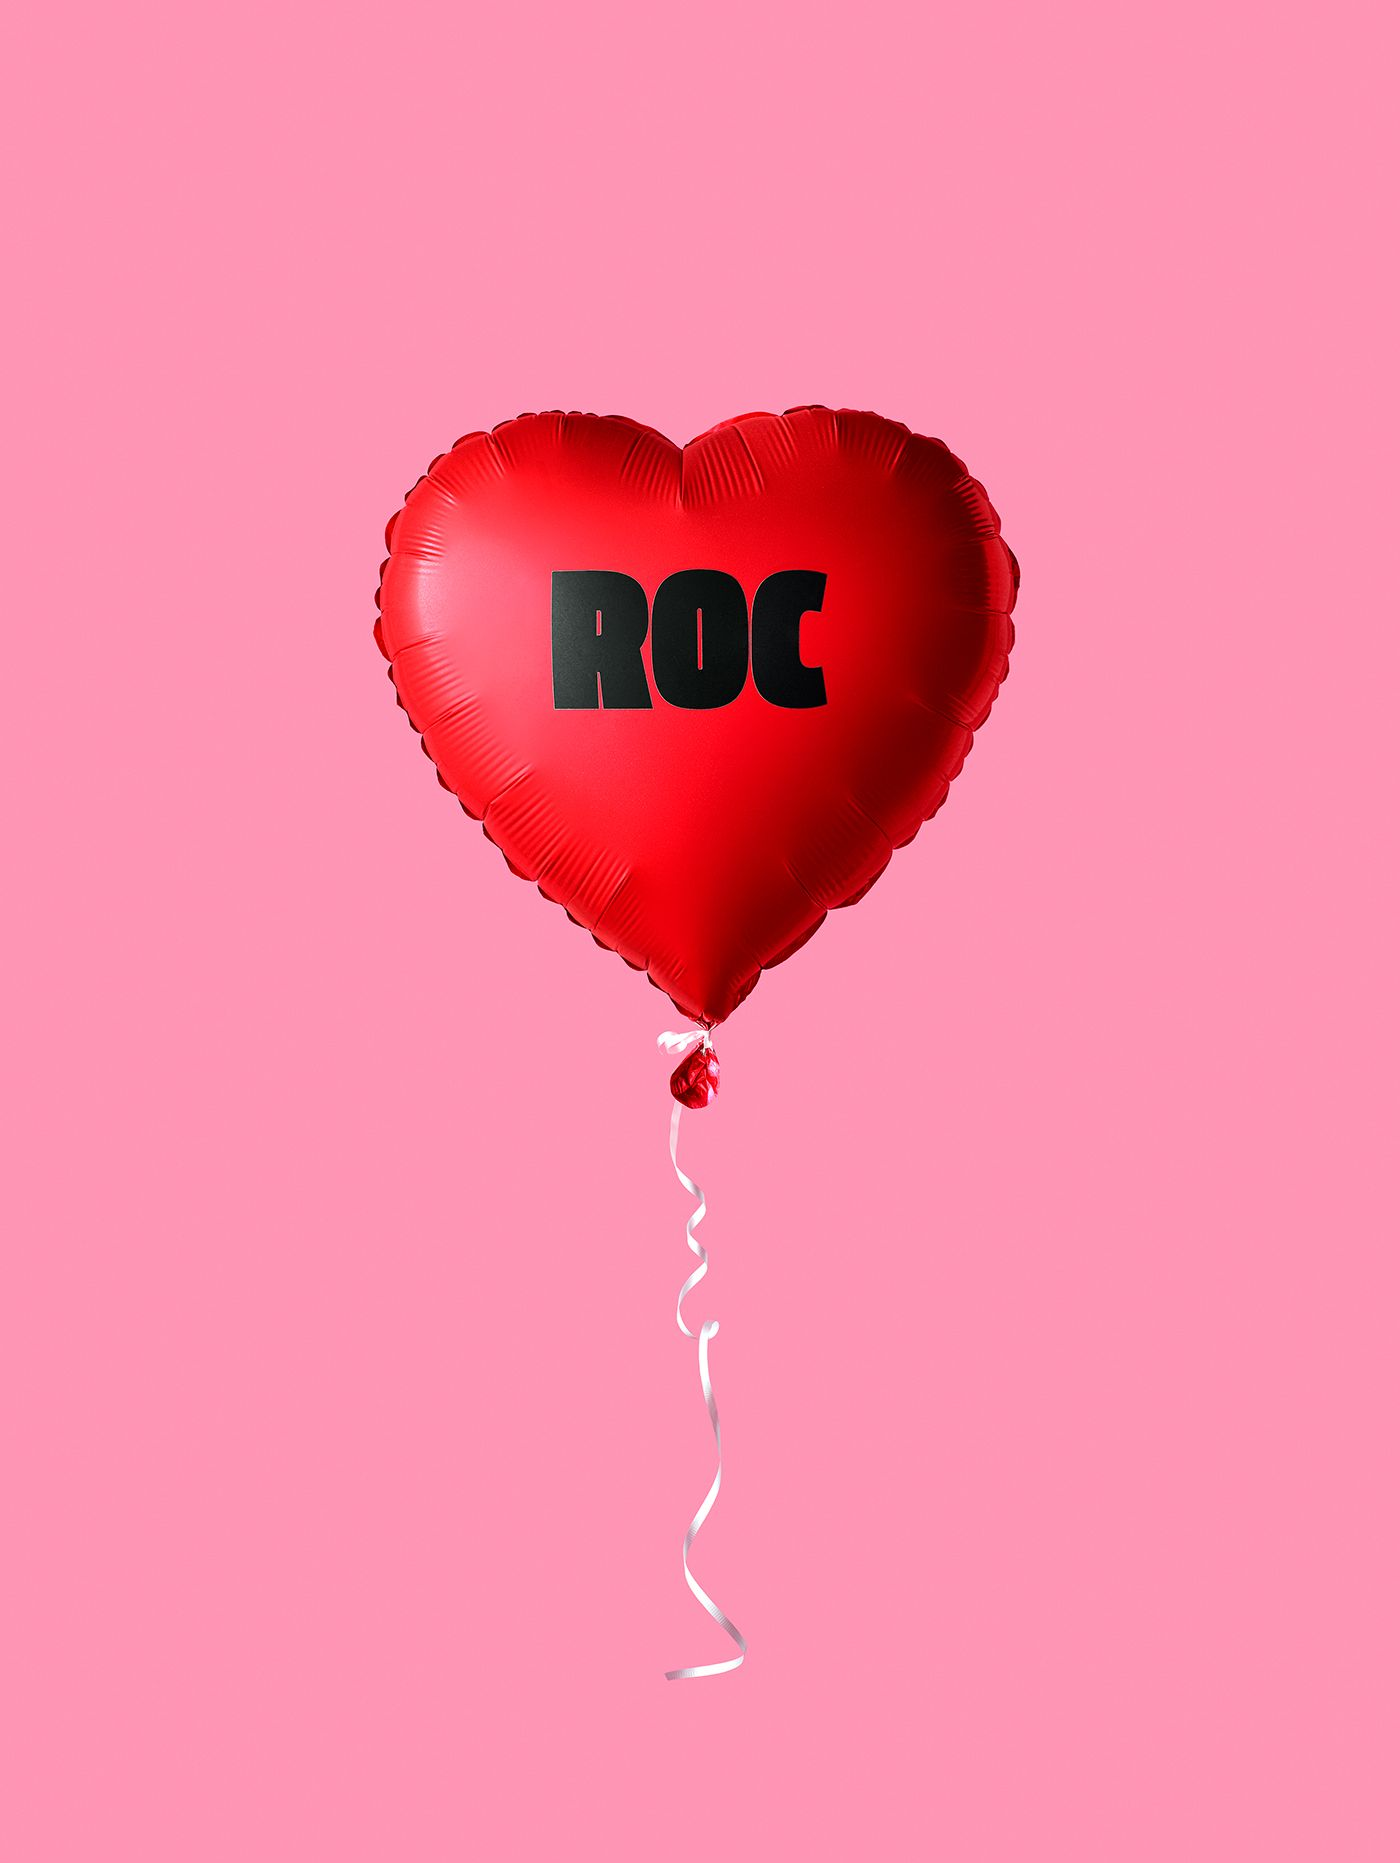 https://tickertapecdn.tdameritrade.com/assets/images/pages/md/Red heart-shaped baloon with ROC printed on it over pink background